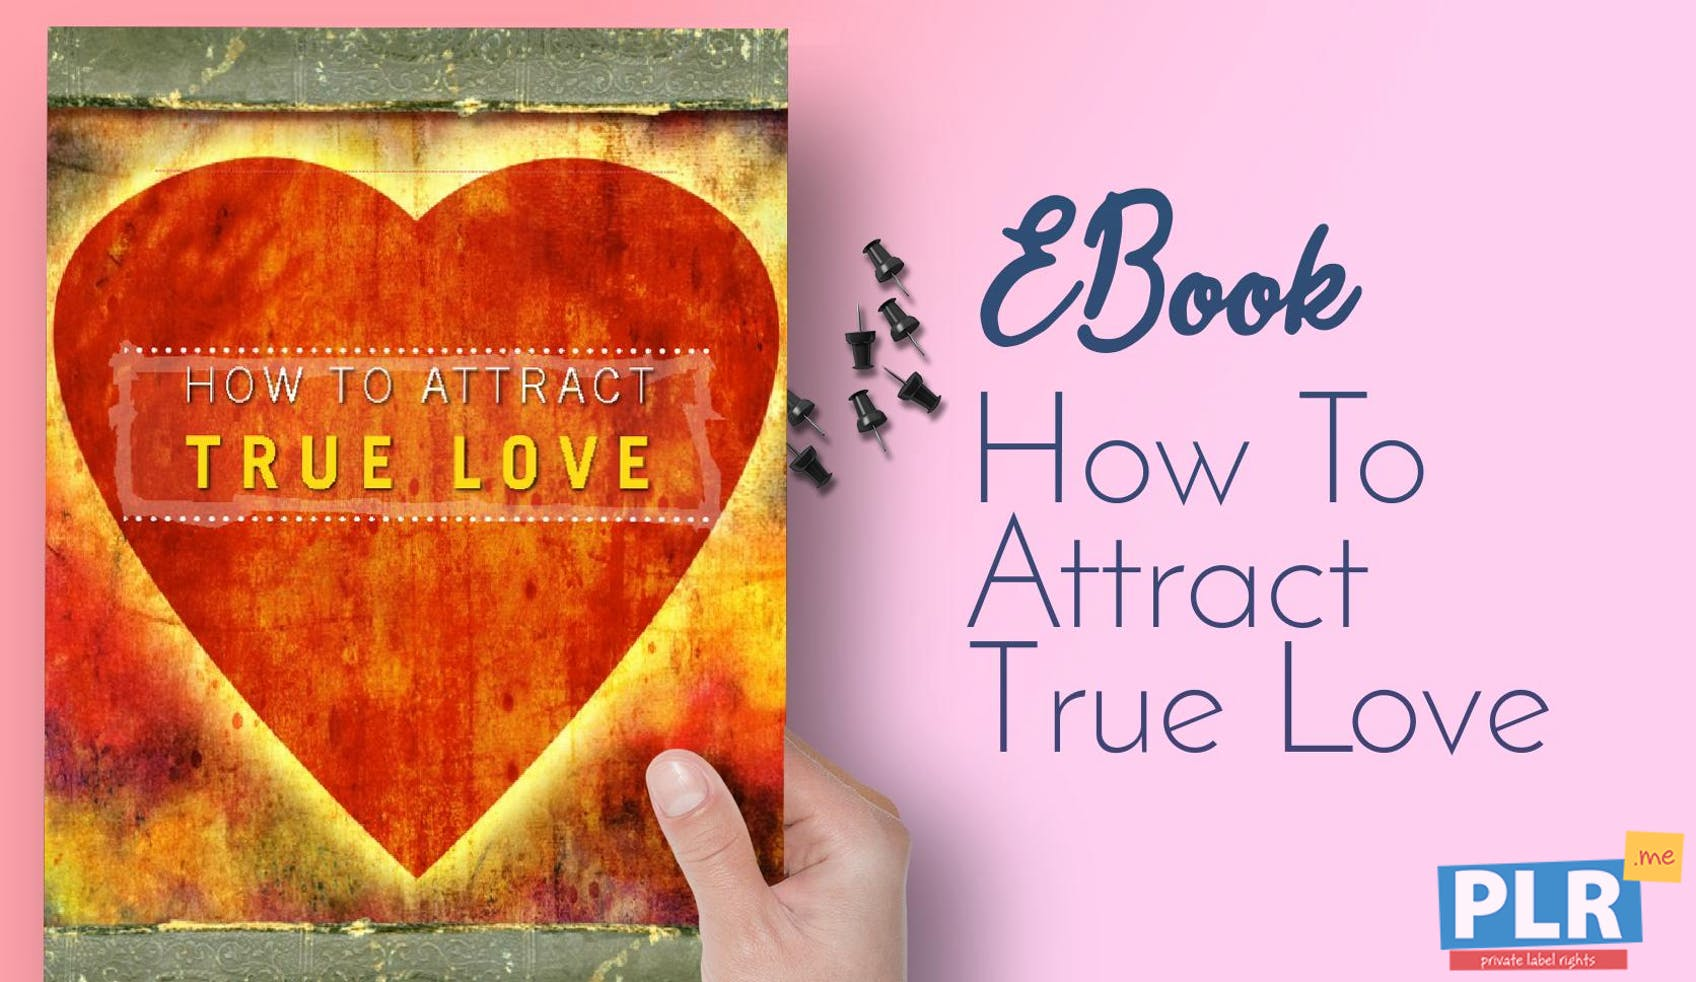 How To Attract True Love